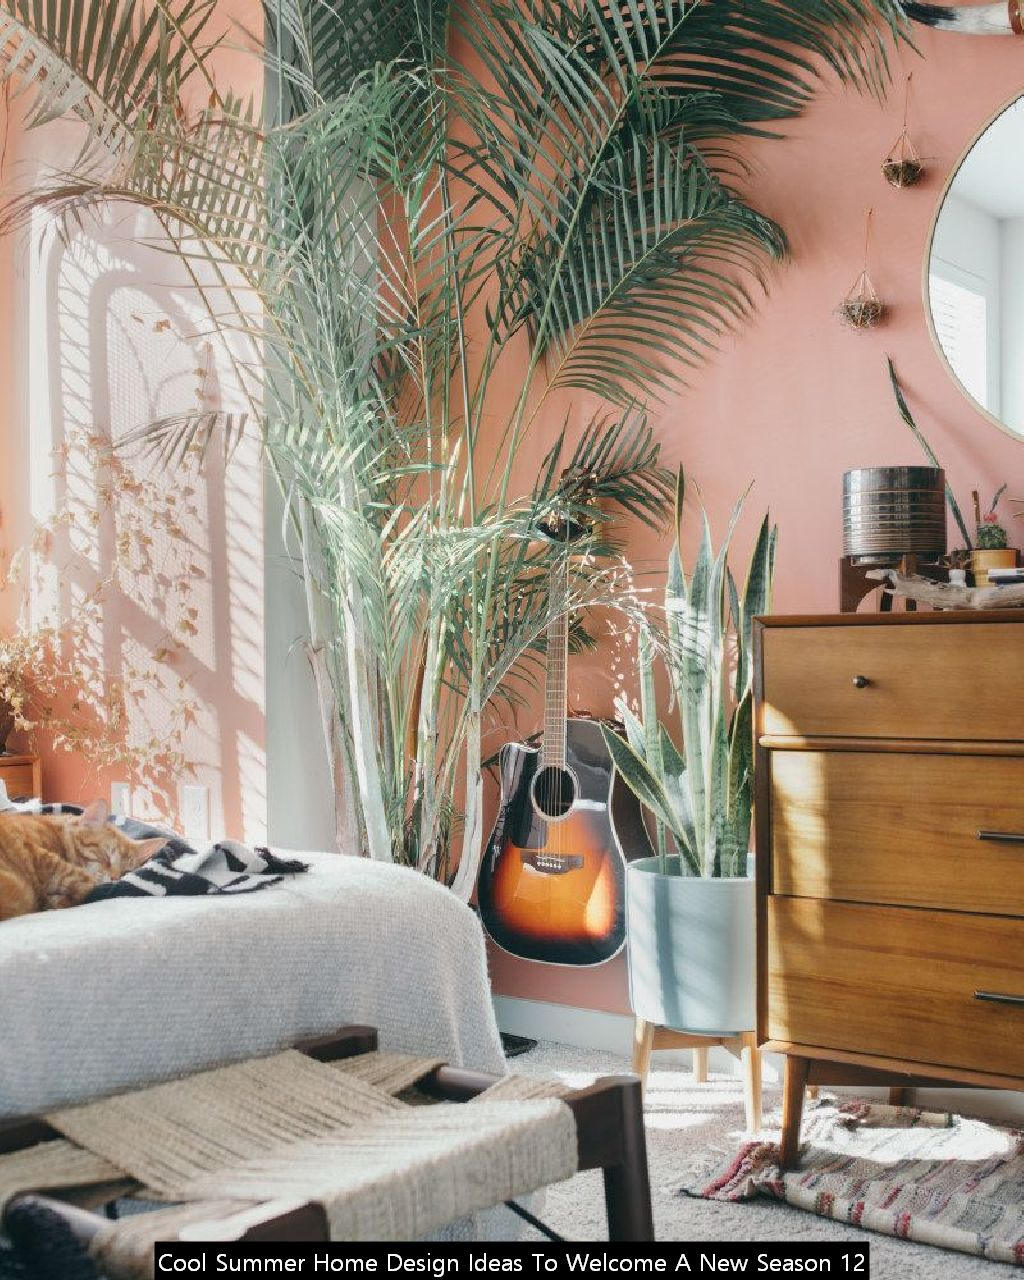 Cool Summer Home Design Ideas To Welcome A New Season 12